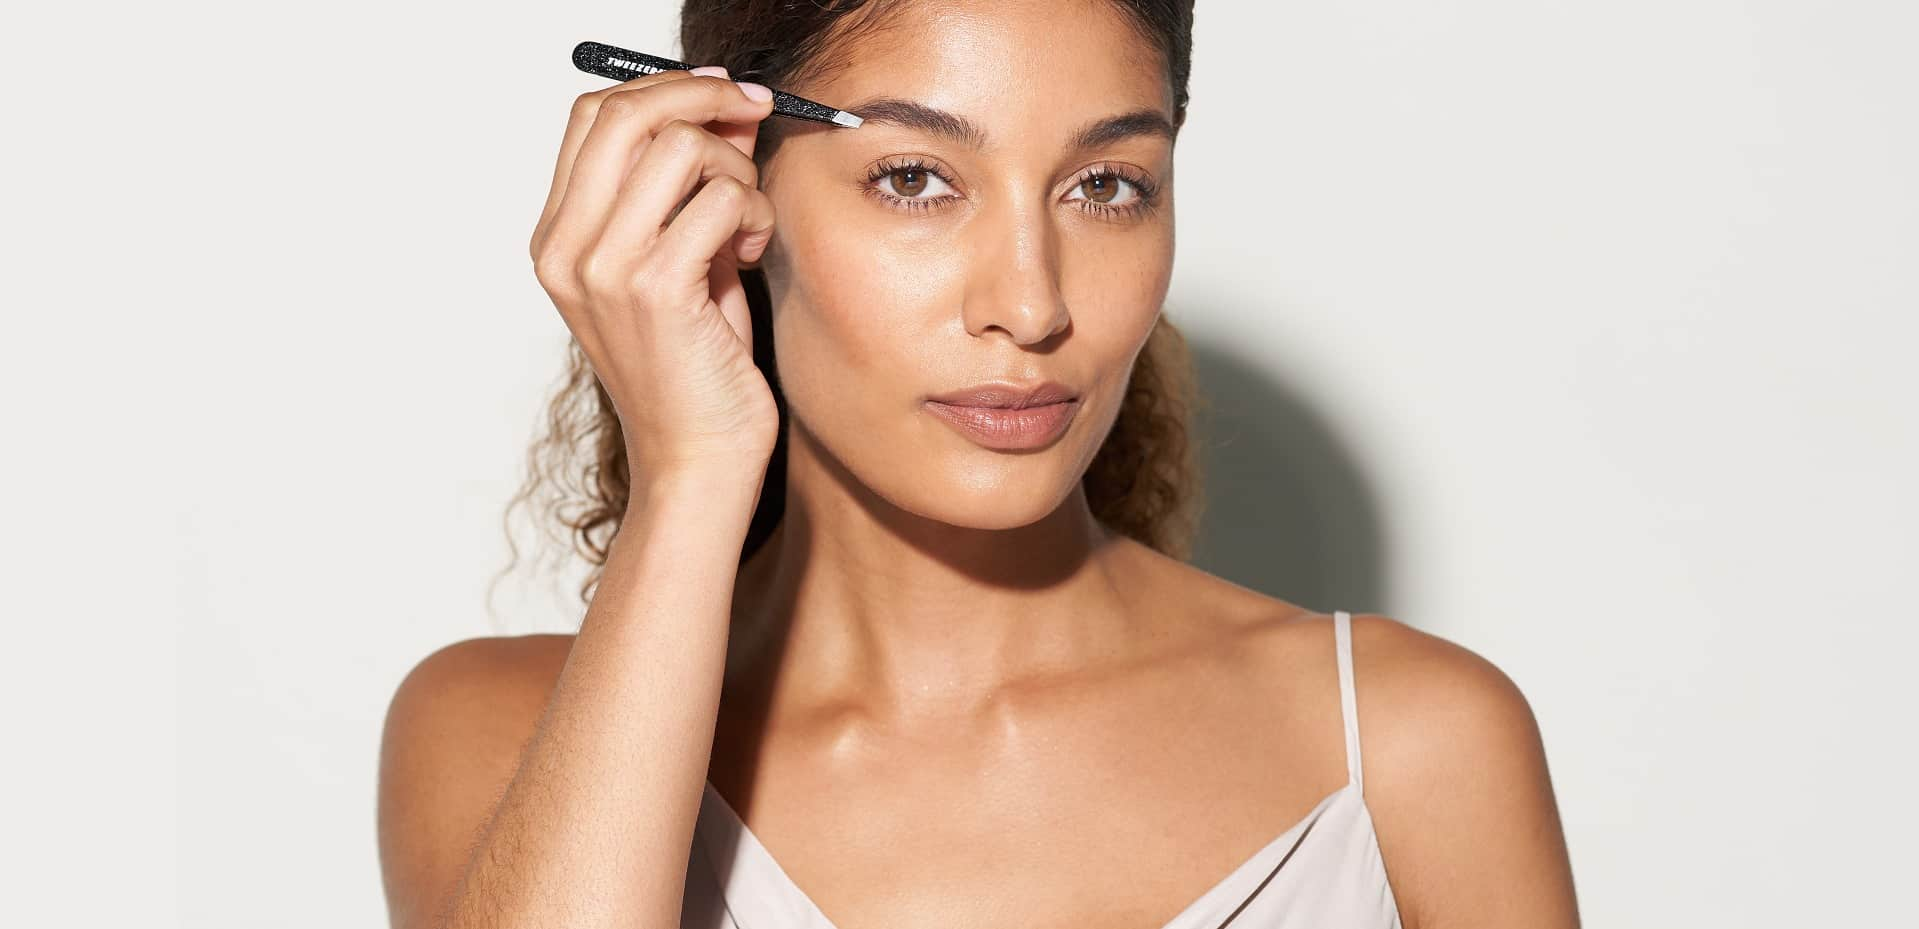 10 Fun Facts to Mark National Brow Day - 2nd Oct